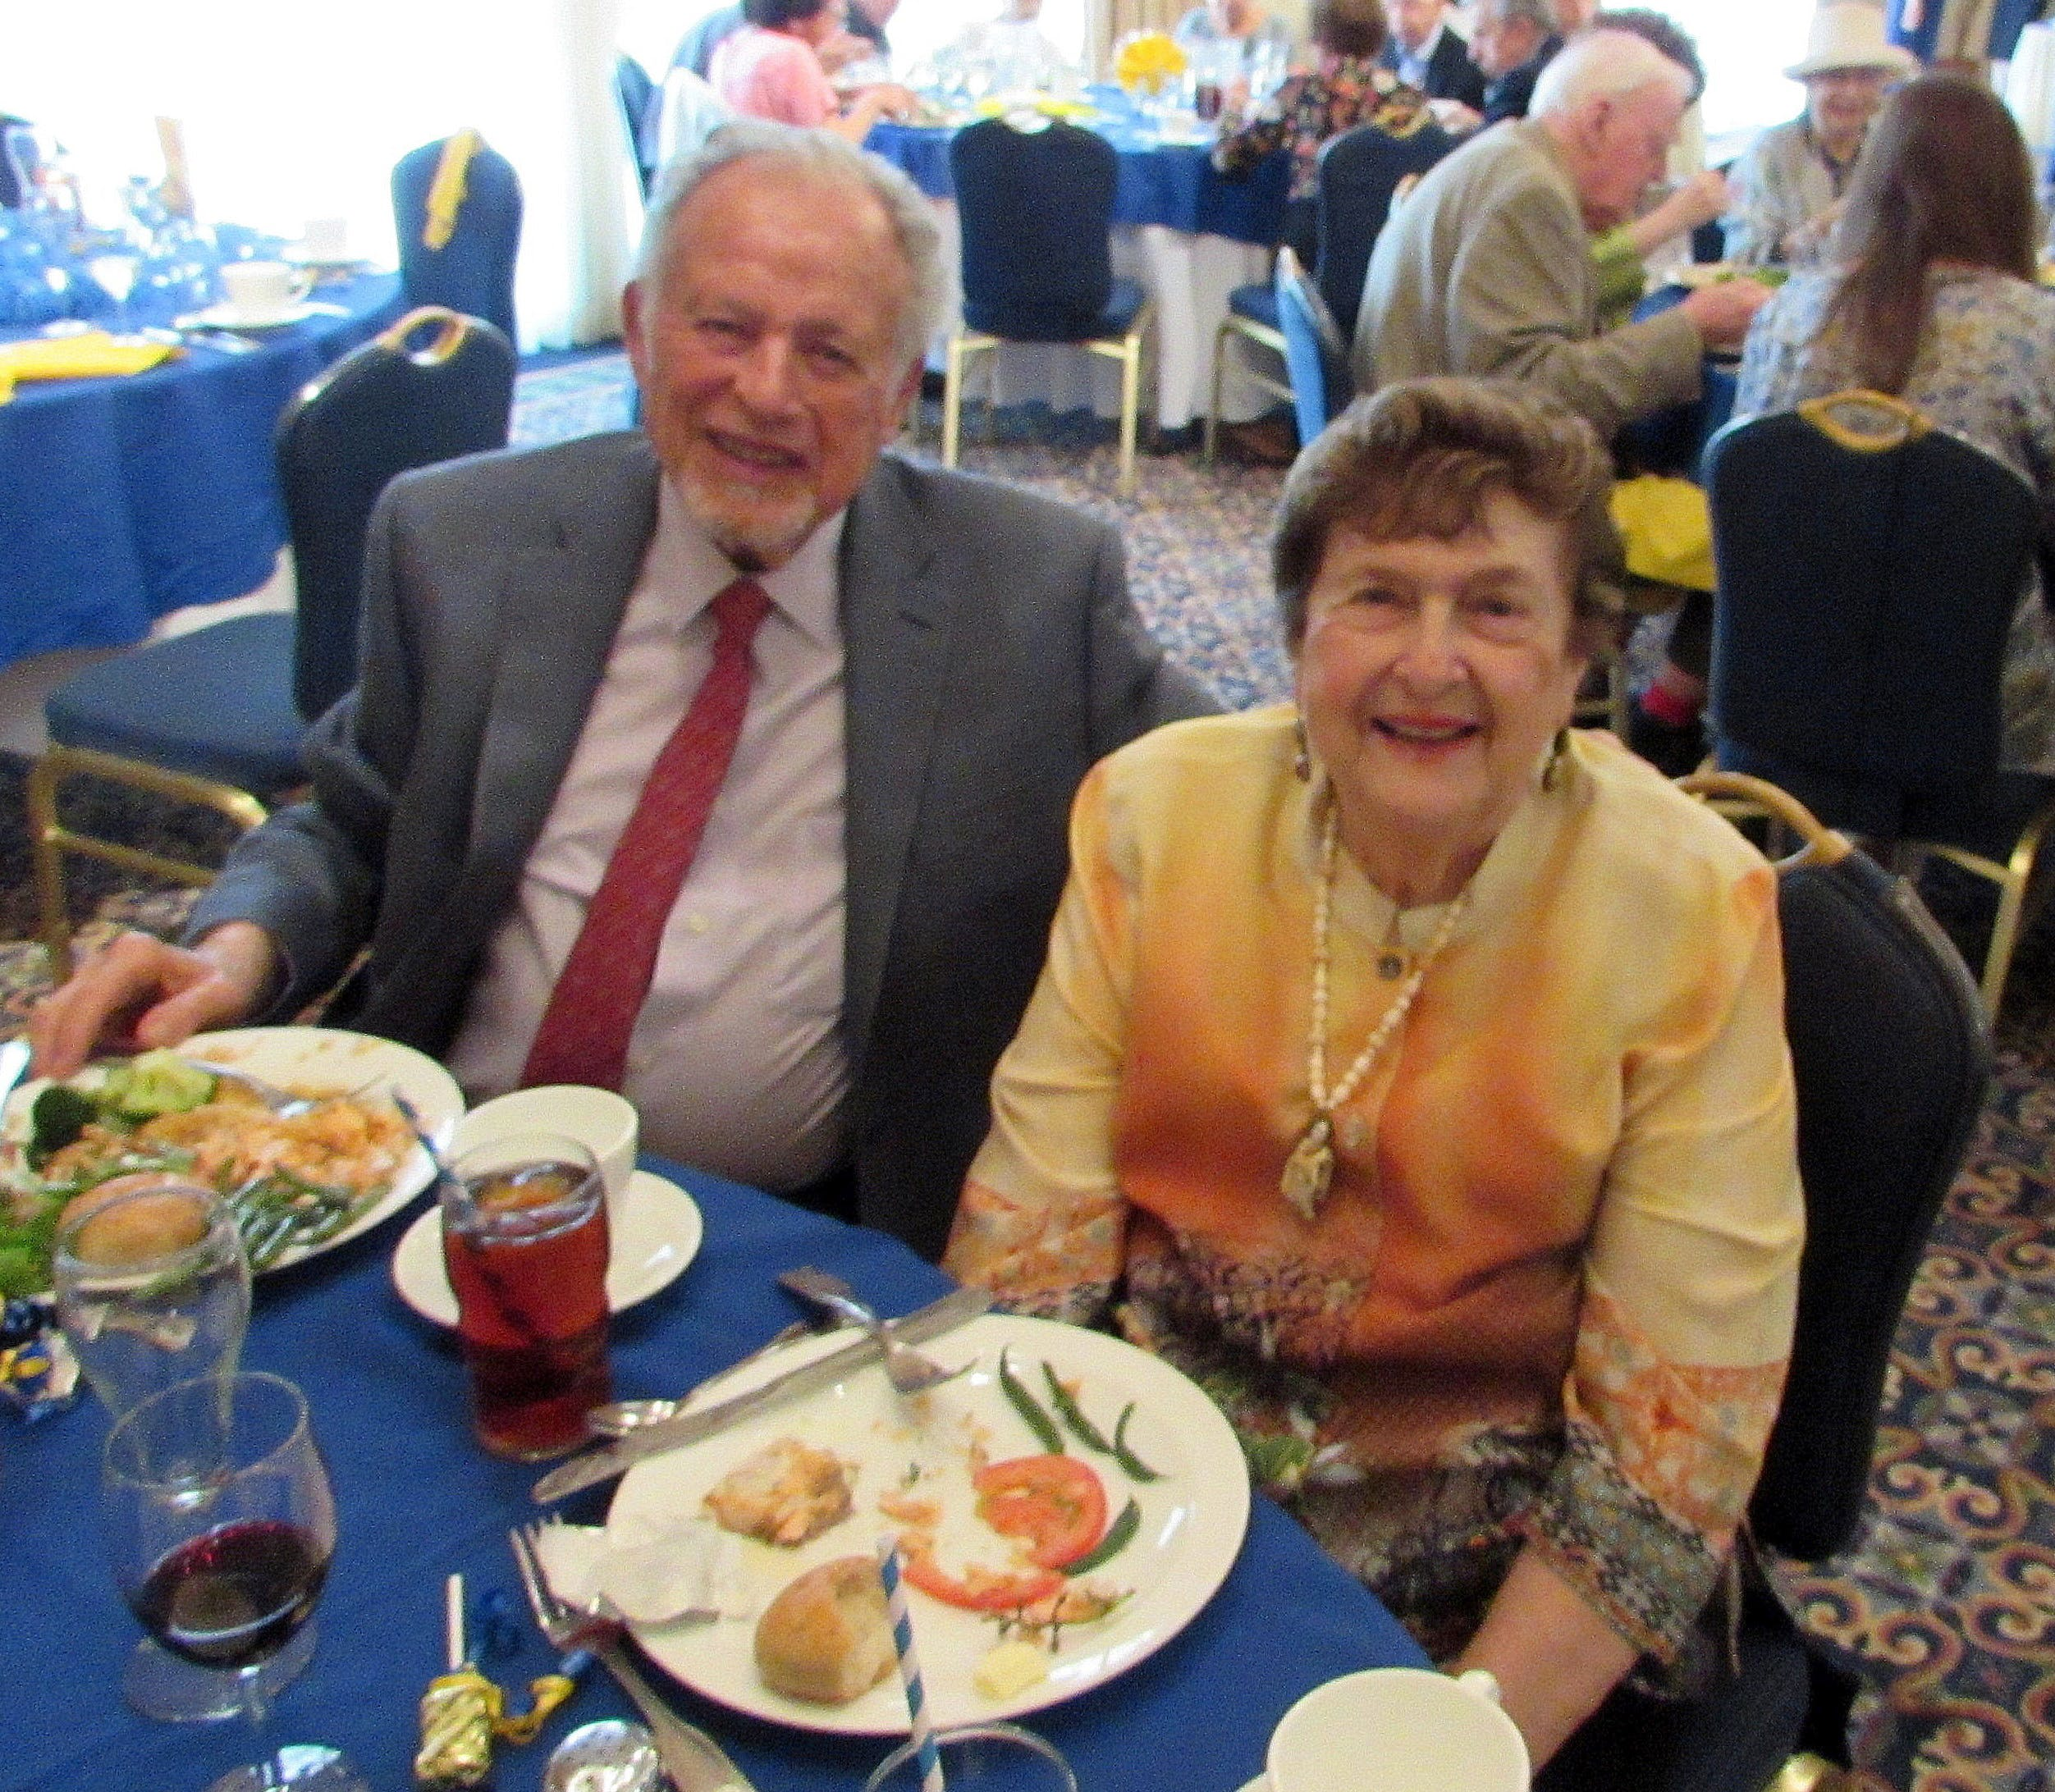 Norma and Sy Feshbach at lunch together